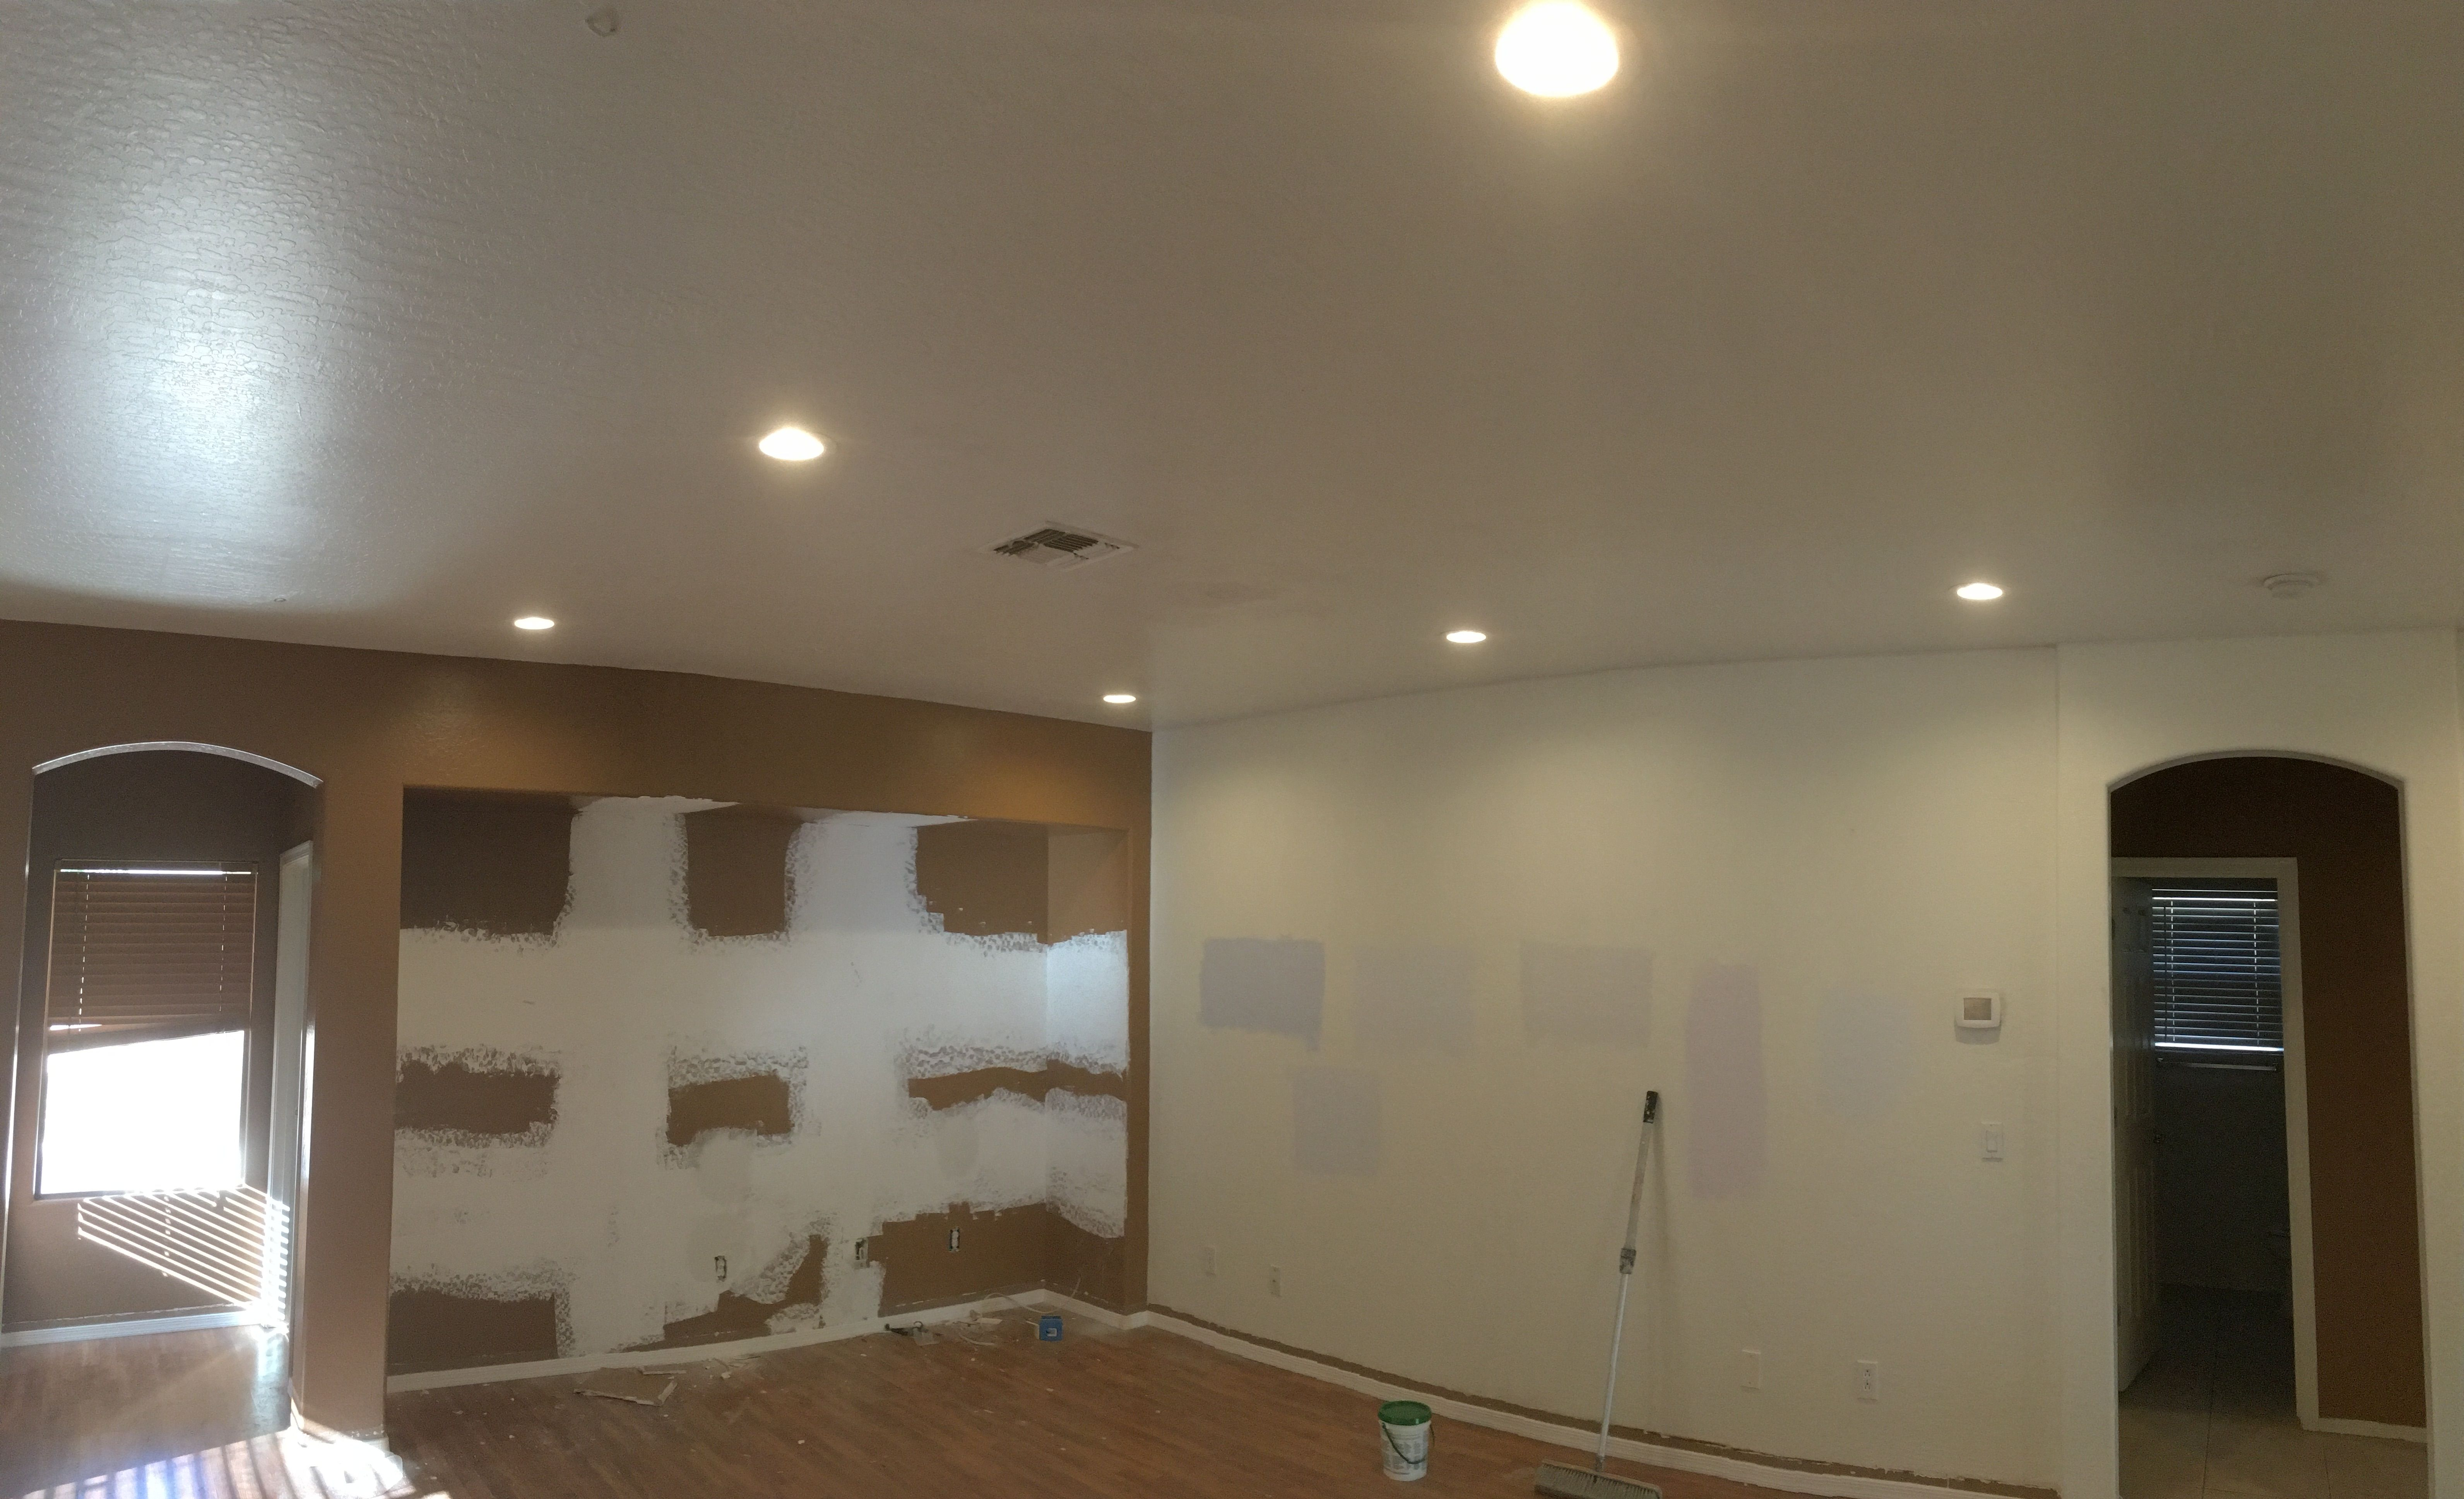 Installed 6 6 Inch Led S And Dimmer In The Living Room Of